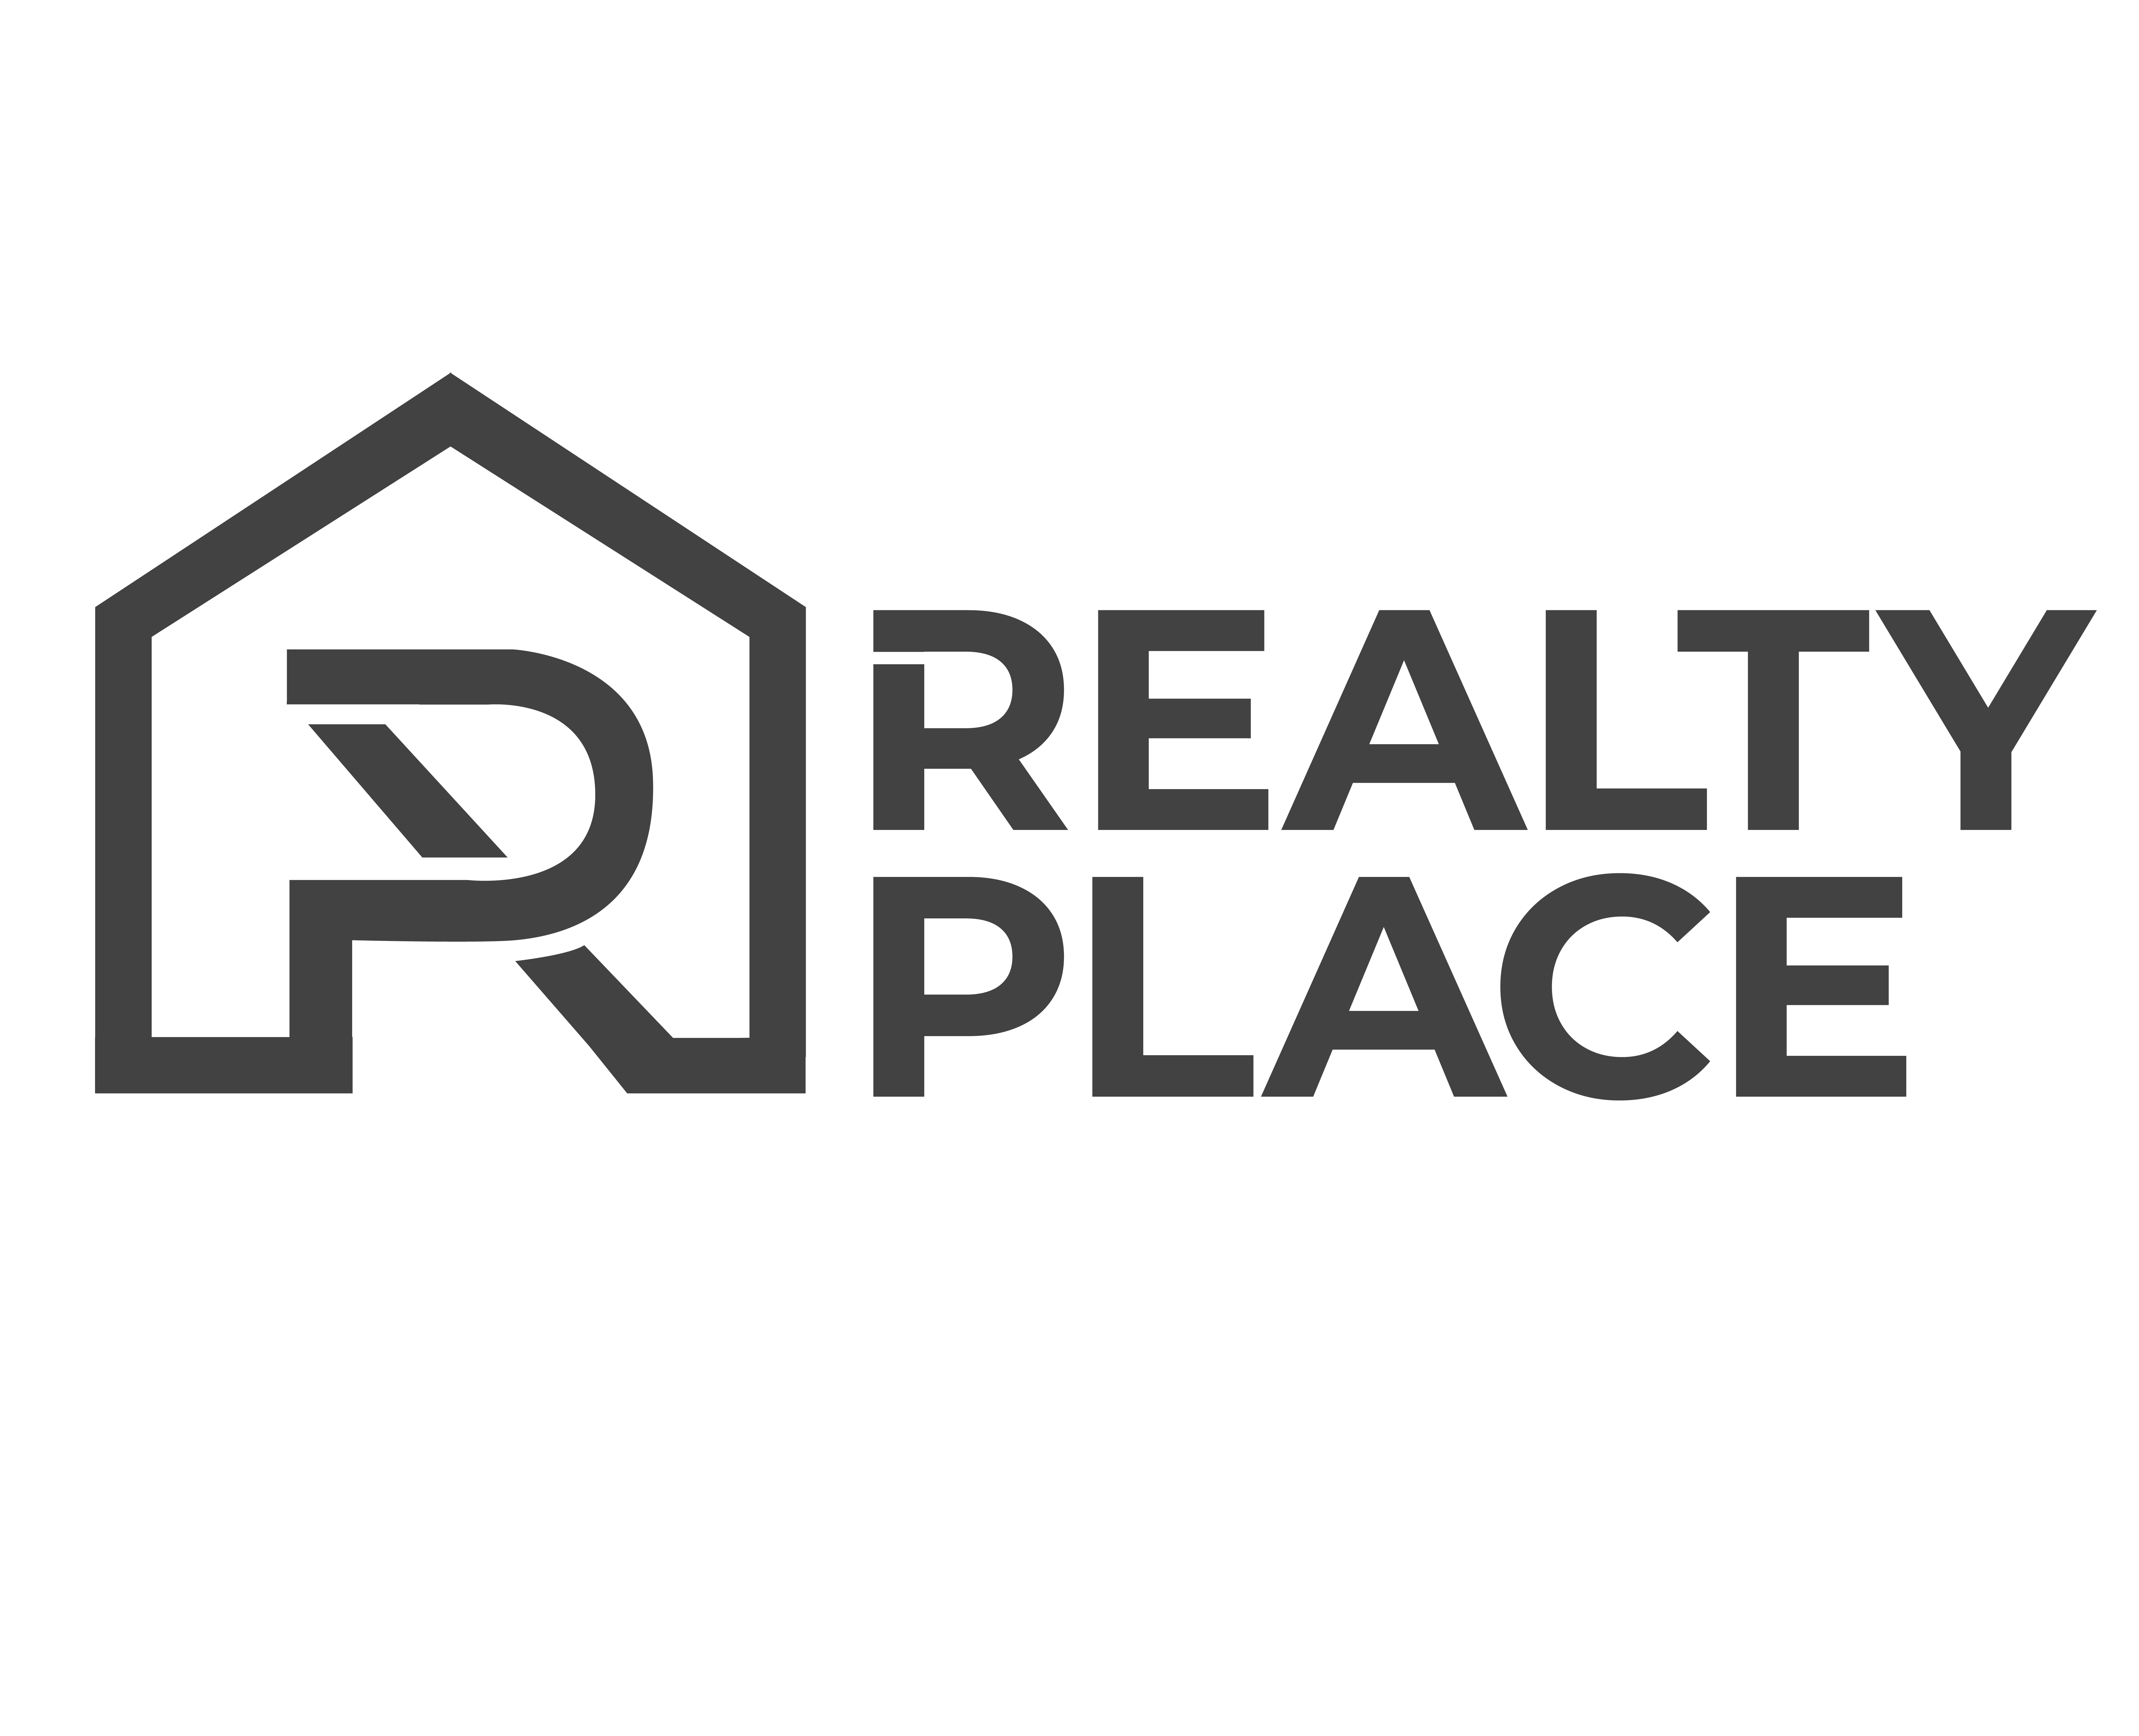 REALTYplace